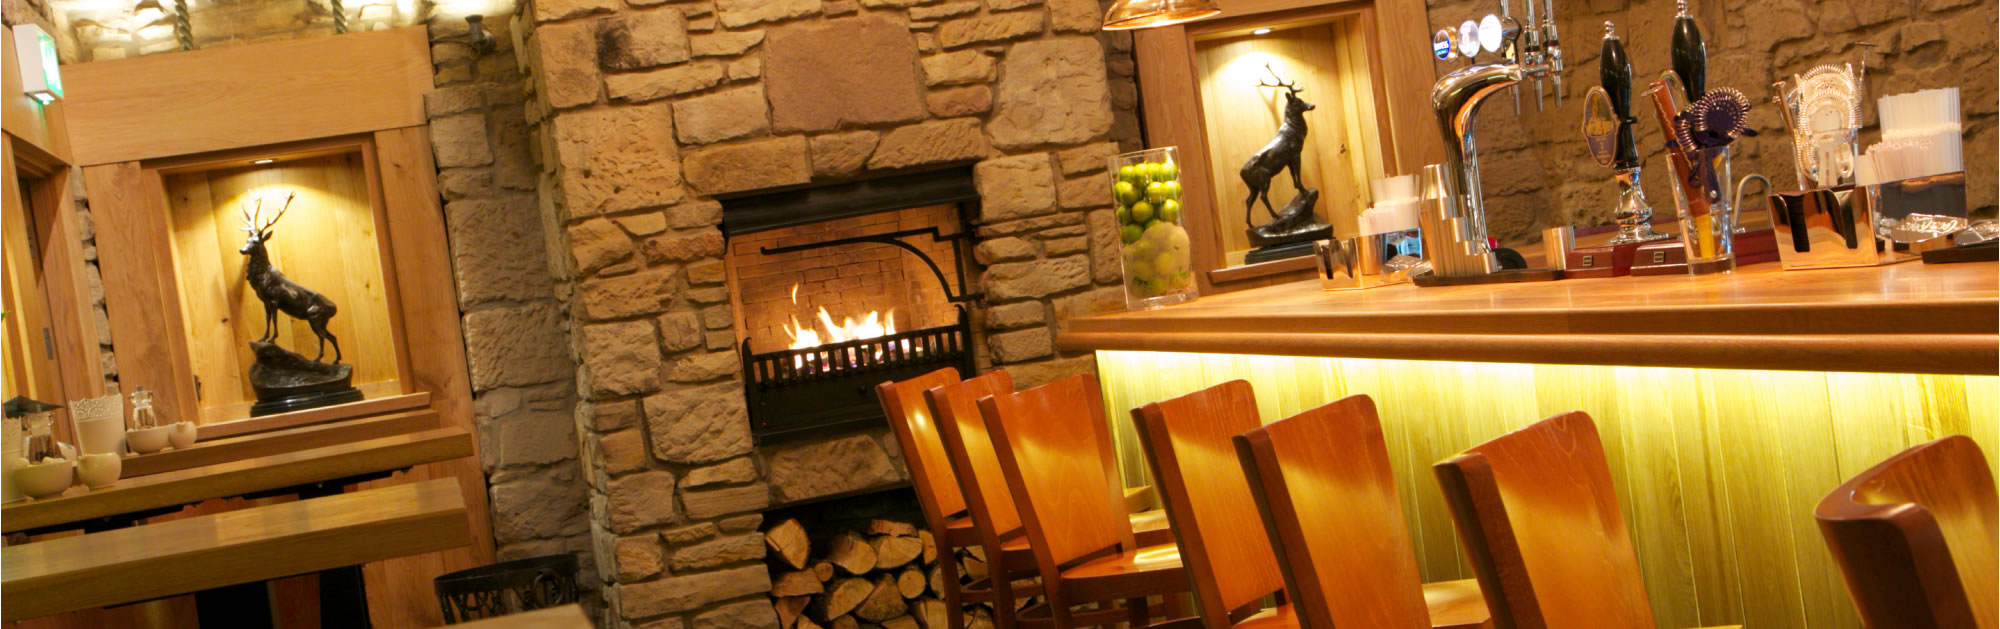 Cosy Atmosphere: Enjoy one of our many ales from the bar before or after your meal